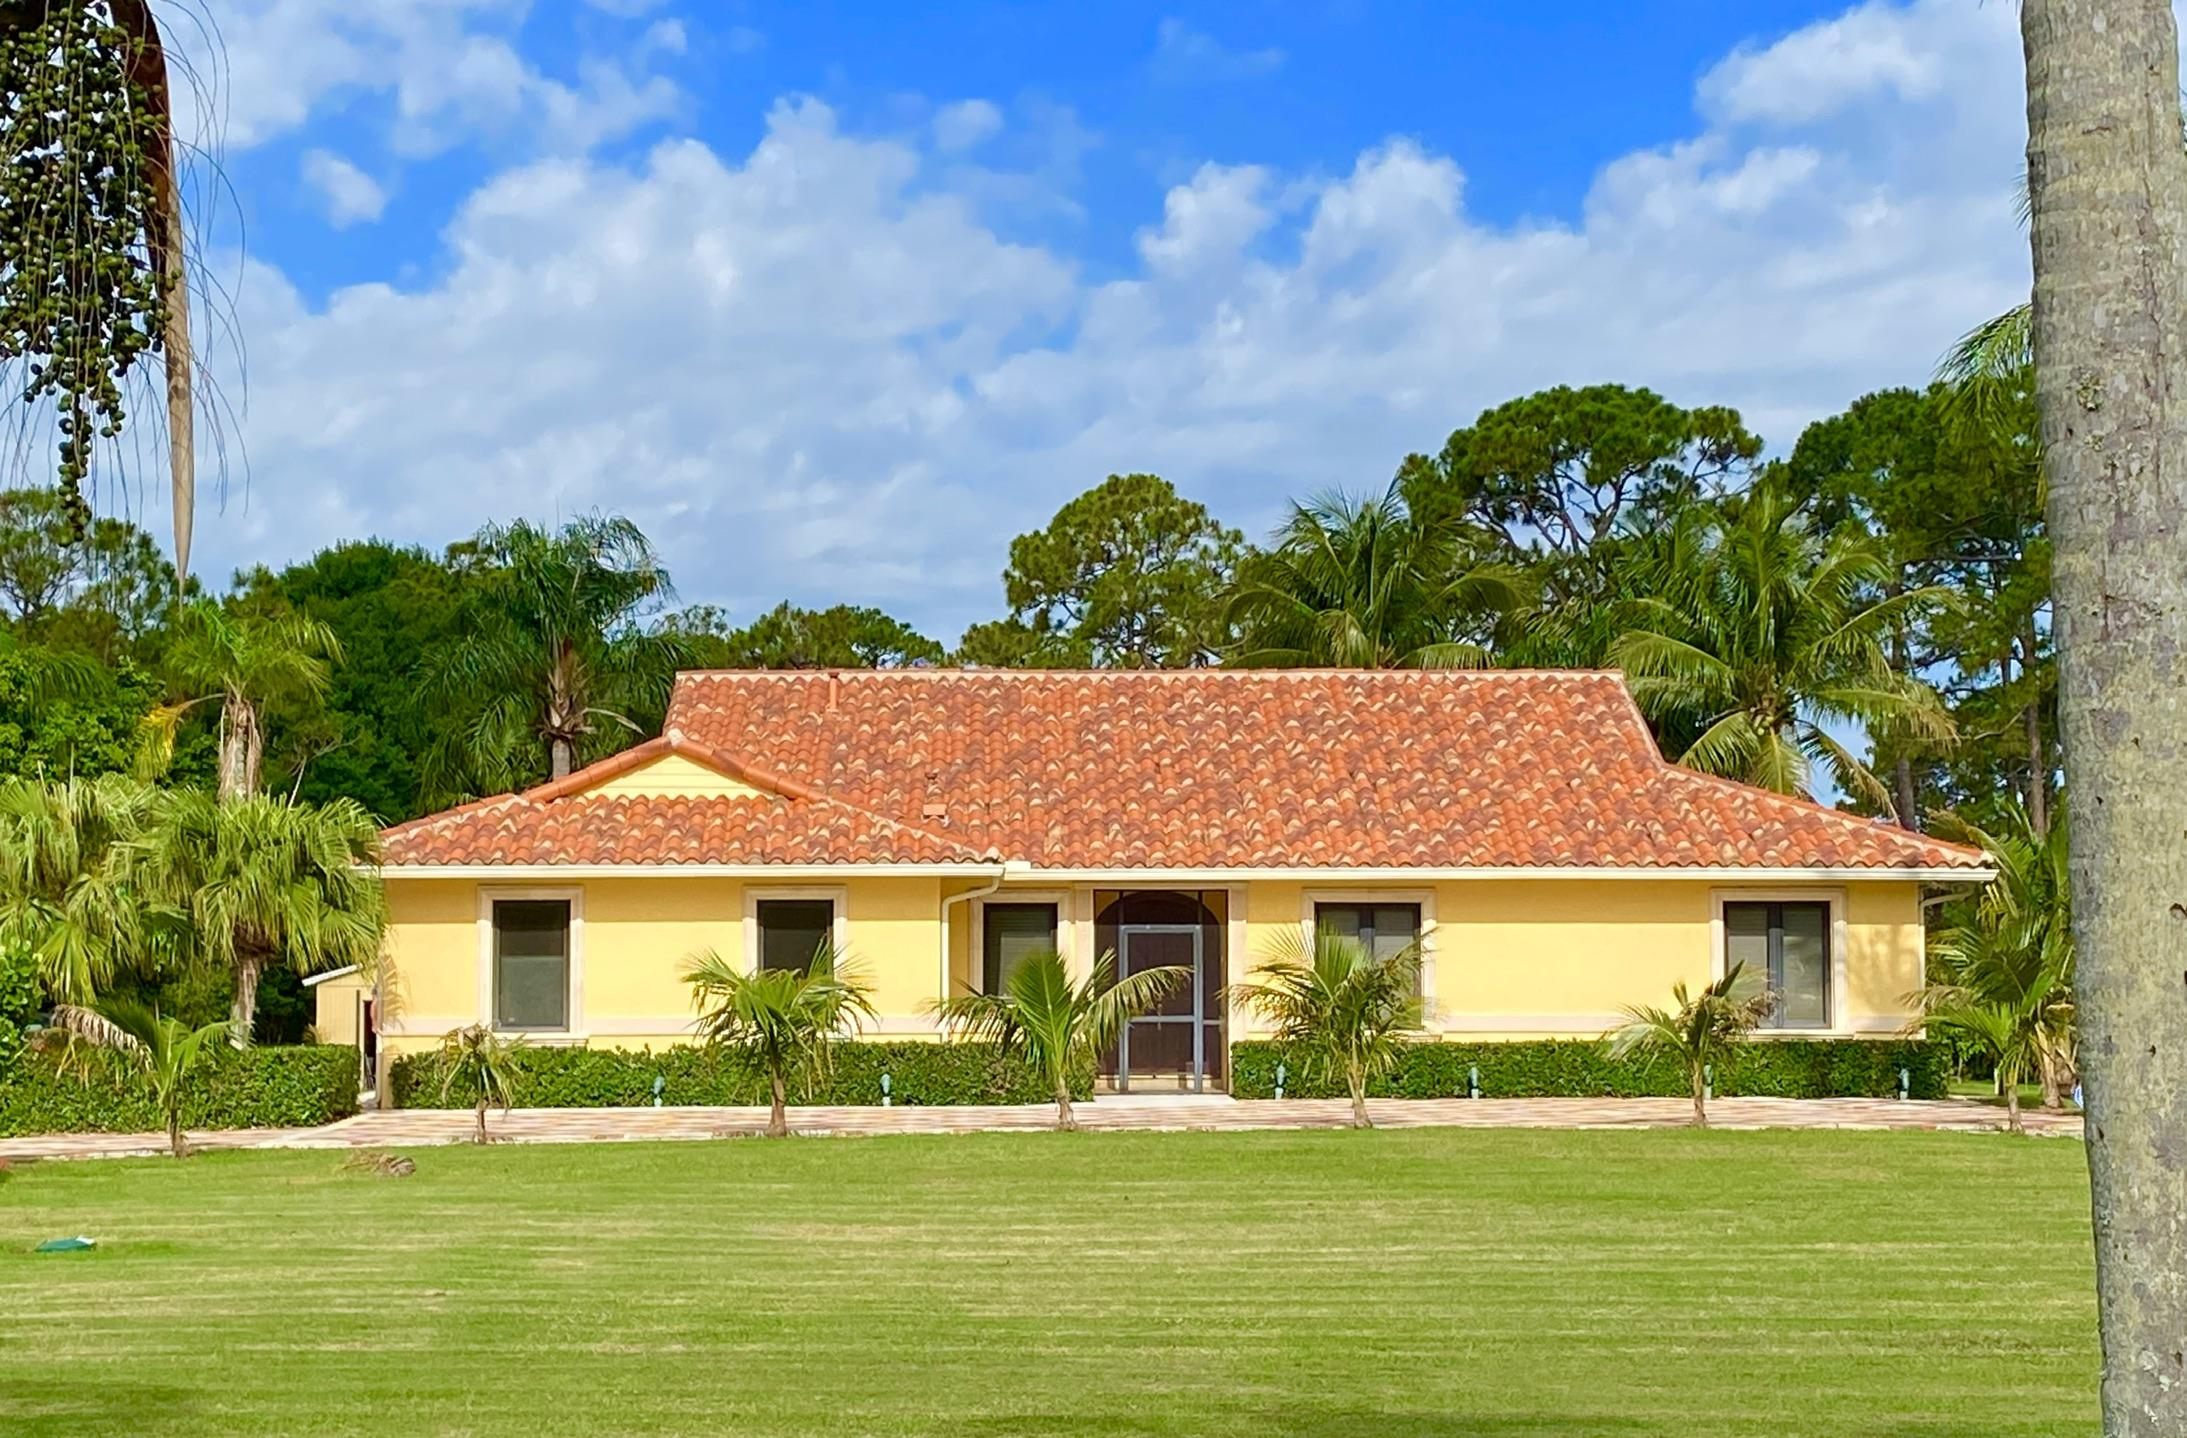 Beautiful Meditteranean High Quality CBS Pool Home on 1.25 acres. Continuous Travertine Floors throughout the ENTIRE home. High volumed and vault ceilings, Travertine walls and marble counters in both bathrooms, Large 22'x21' Open Kitchen with Gas range/oven, Large counter area for entertaining, Full Pantry, Floor to ceiling cabinets open to the Pool Area, 18'x14' Formal Dining Room, & 23'x20' Living Room Area open to the Pool, 2 1/2 Car Garage with Epoxy Flooring, Inside Laundry room, Approximately 60'x50' of Pool Patio with Freeform POOL. Updated Thermal Insulation in attic (FPL $140-$180), solid wood doors, marble baseboards, FULL hurricane protection, Large decorate driveway with Electric Gates and Lights, automatic sprinklers, Fruit Trees, Property located on Paved Road.